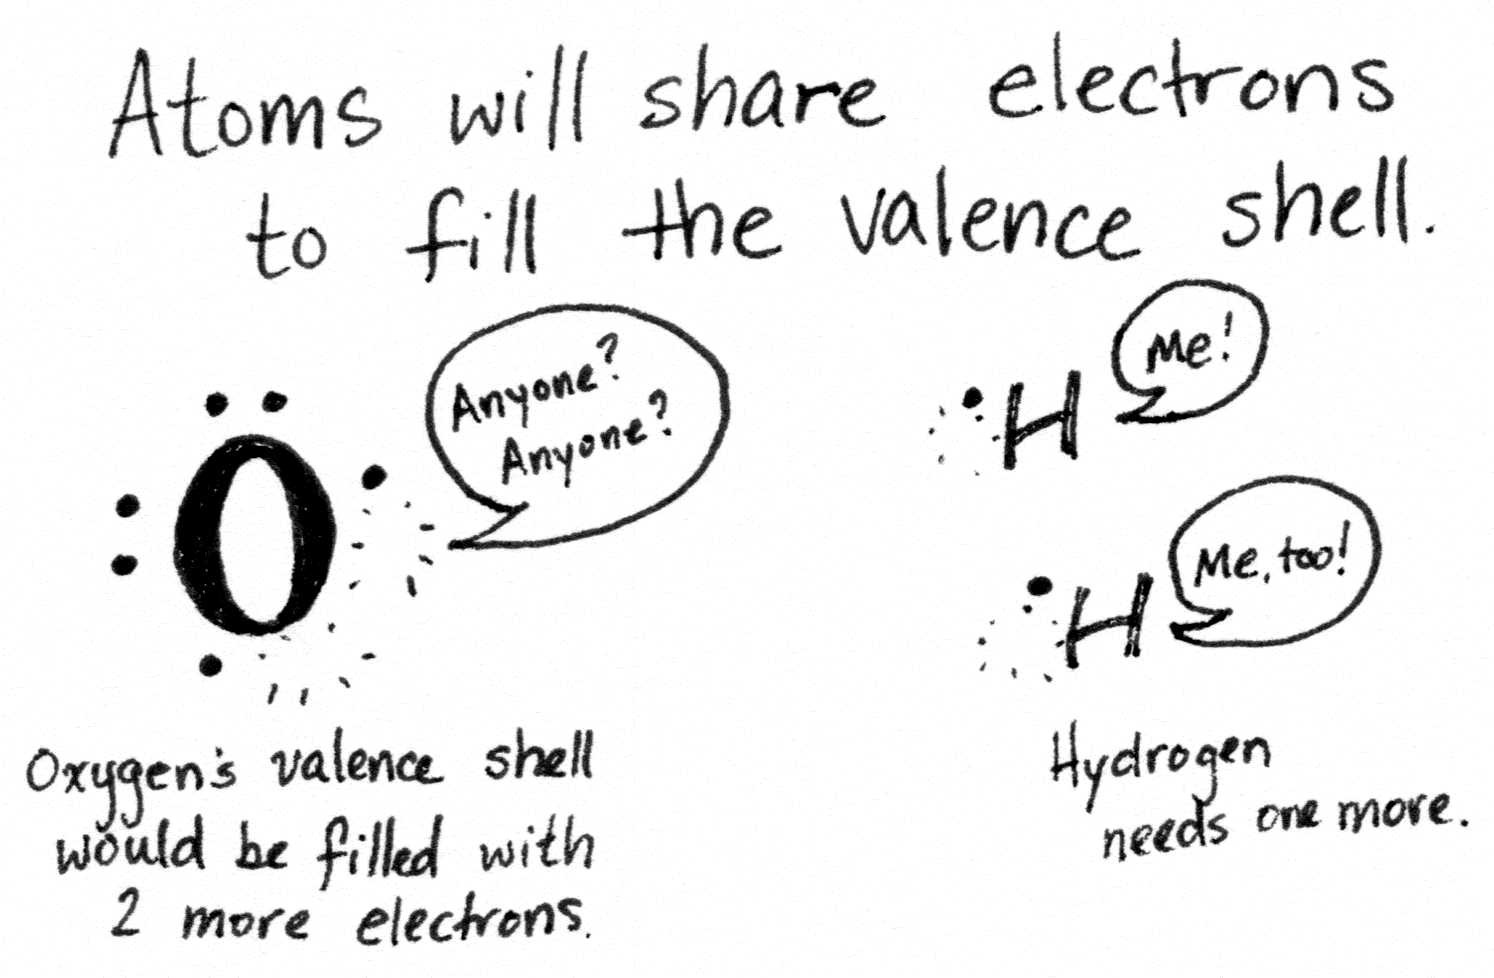 Oxygen has room for two more electrons in its valence shell. Hydrogen has one electron; a second would fill its shell.